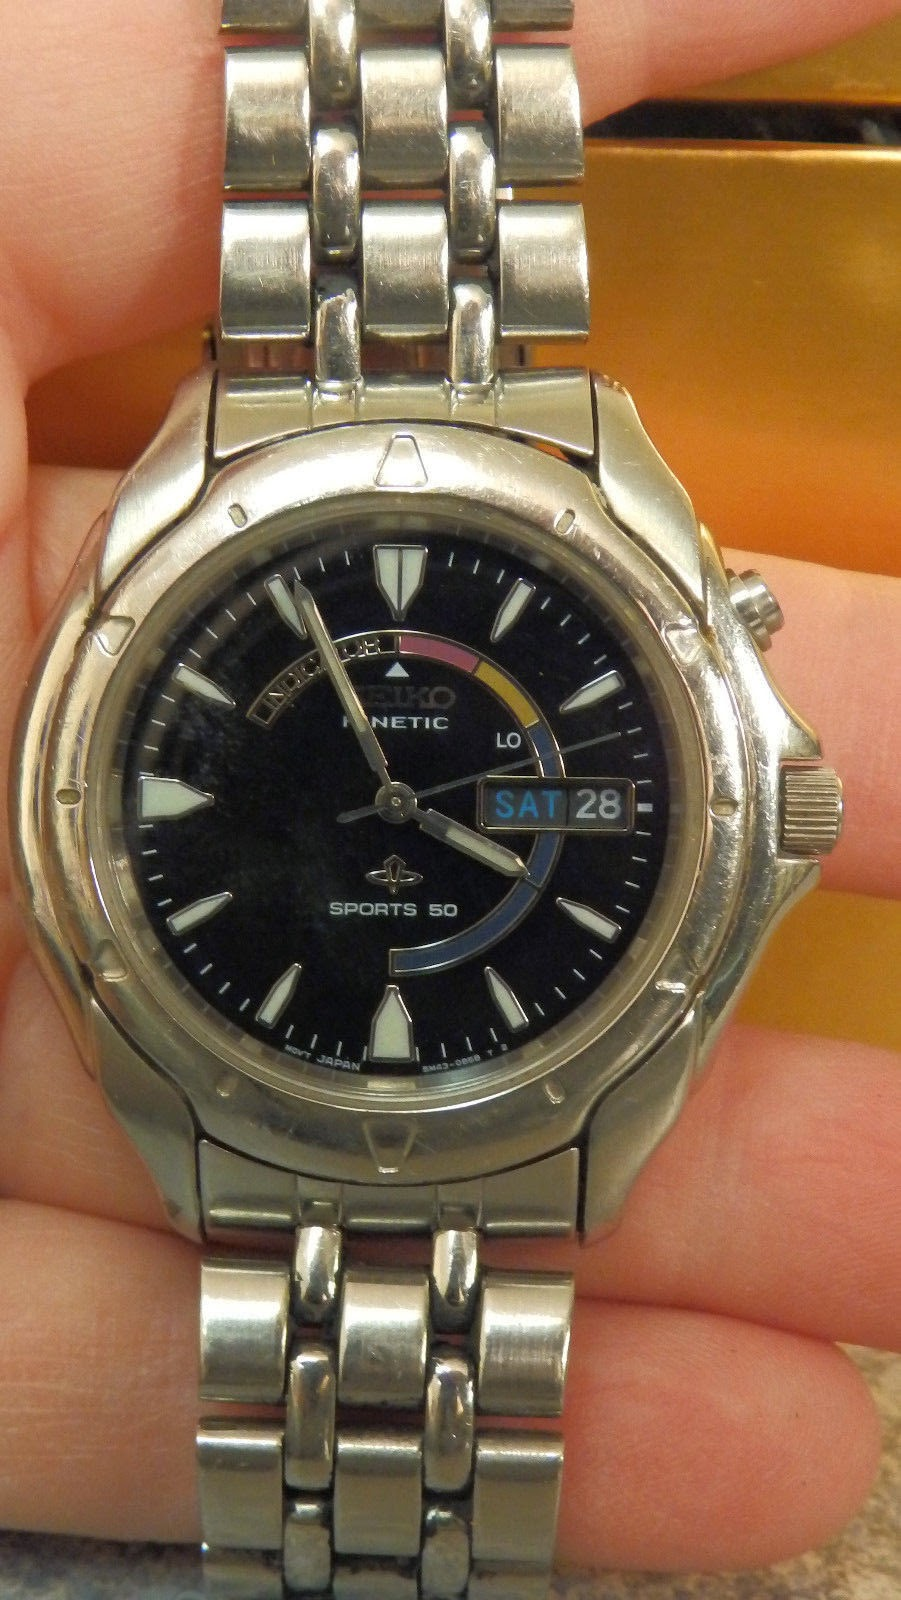 http://www.ebay.com/itm/mens-seiko-watch-kinetic-sports-50-Silver-tone-band-with-black-face-/321683536749?pt=LH_DefaultDomain_0&hash=item4ae5d53b6d